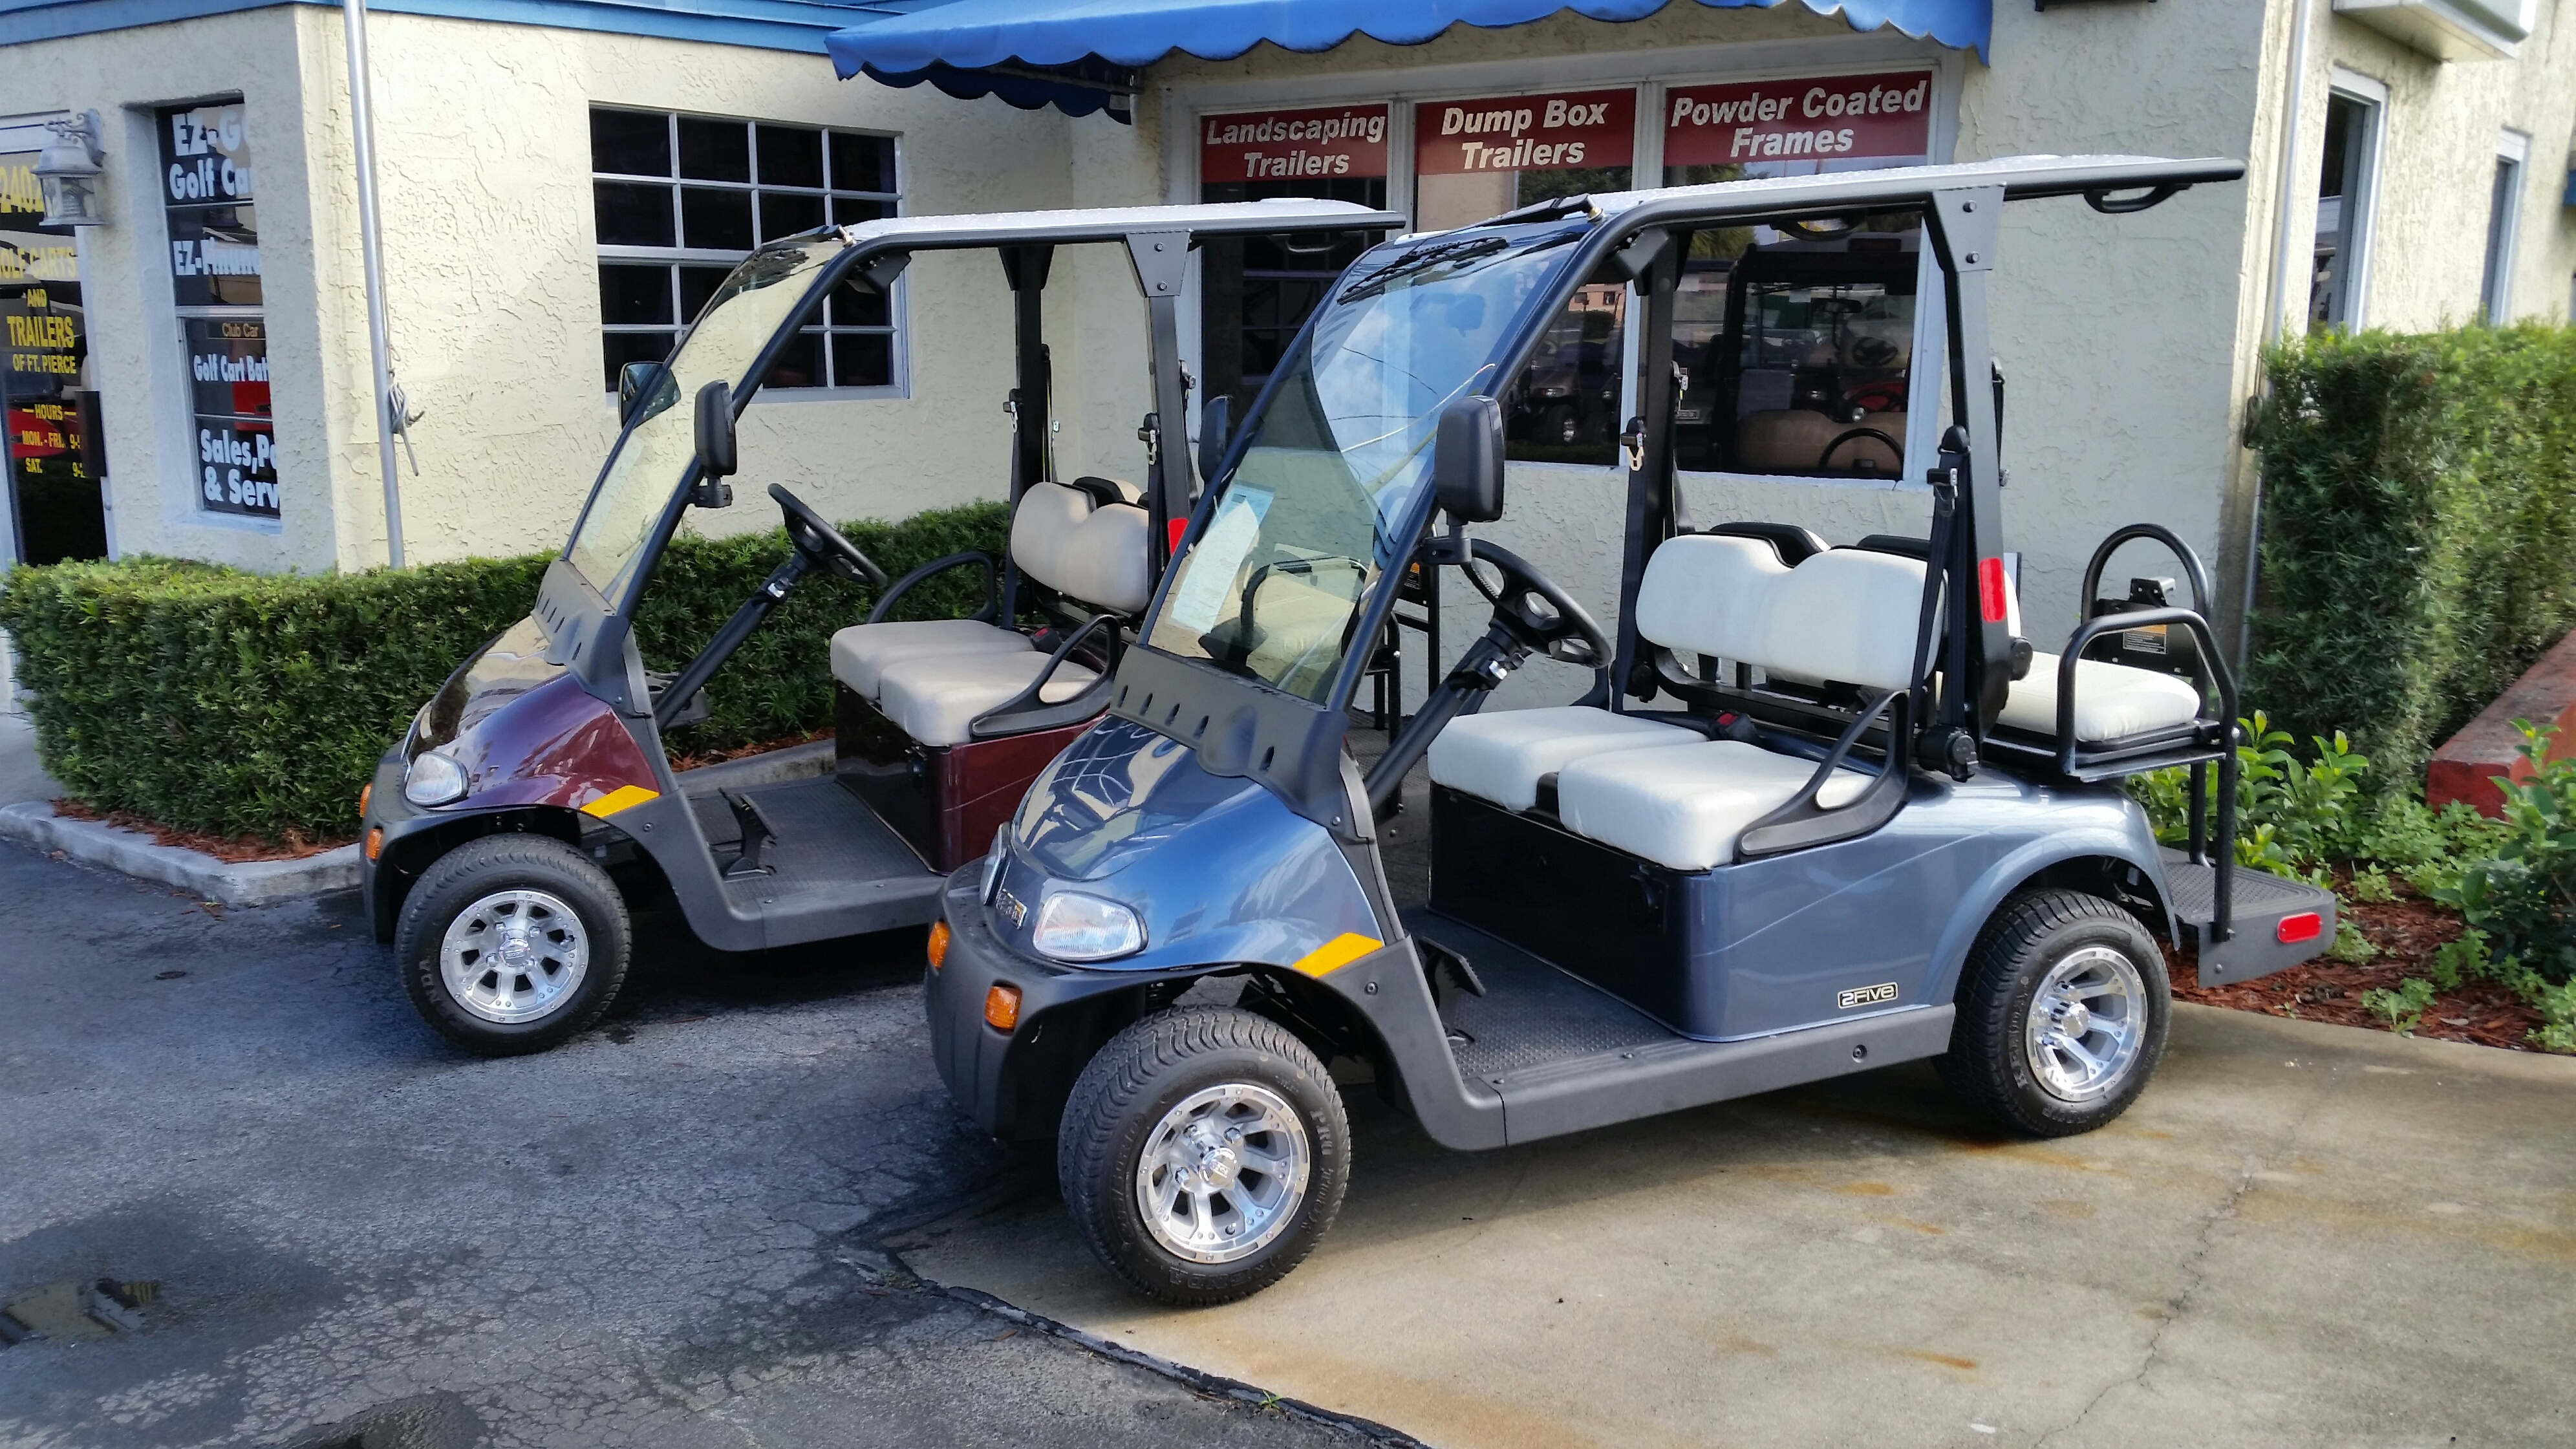 Wildar Golf Carts and Trailers image 2